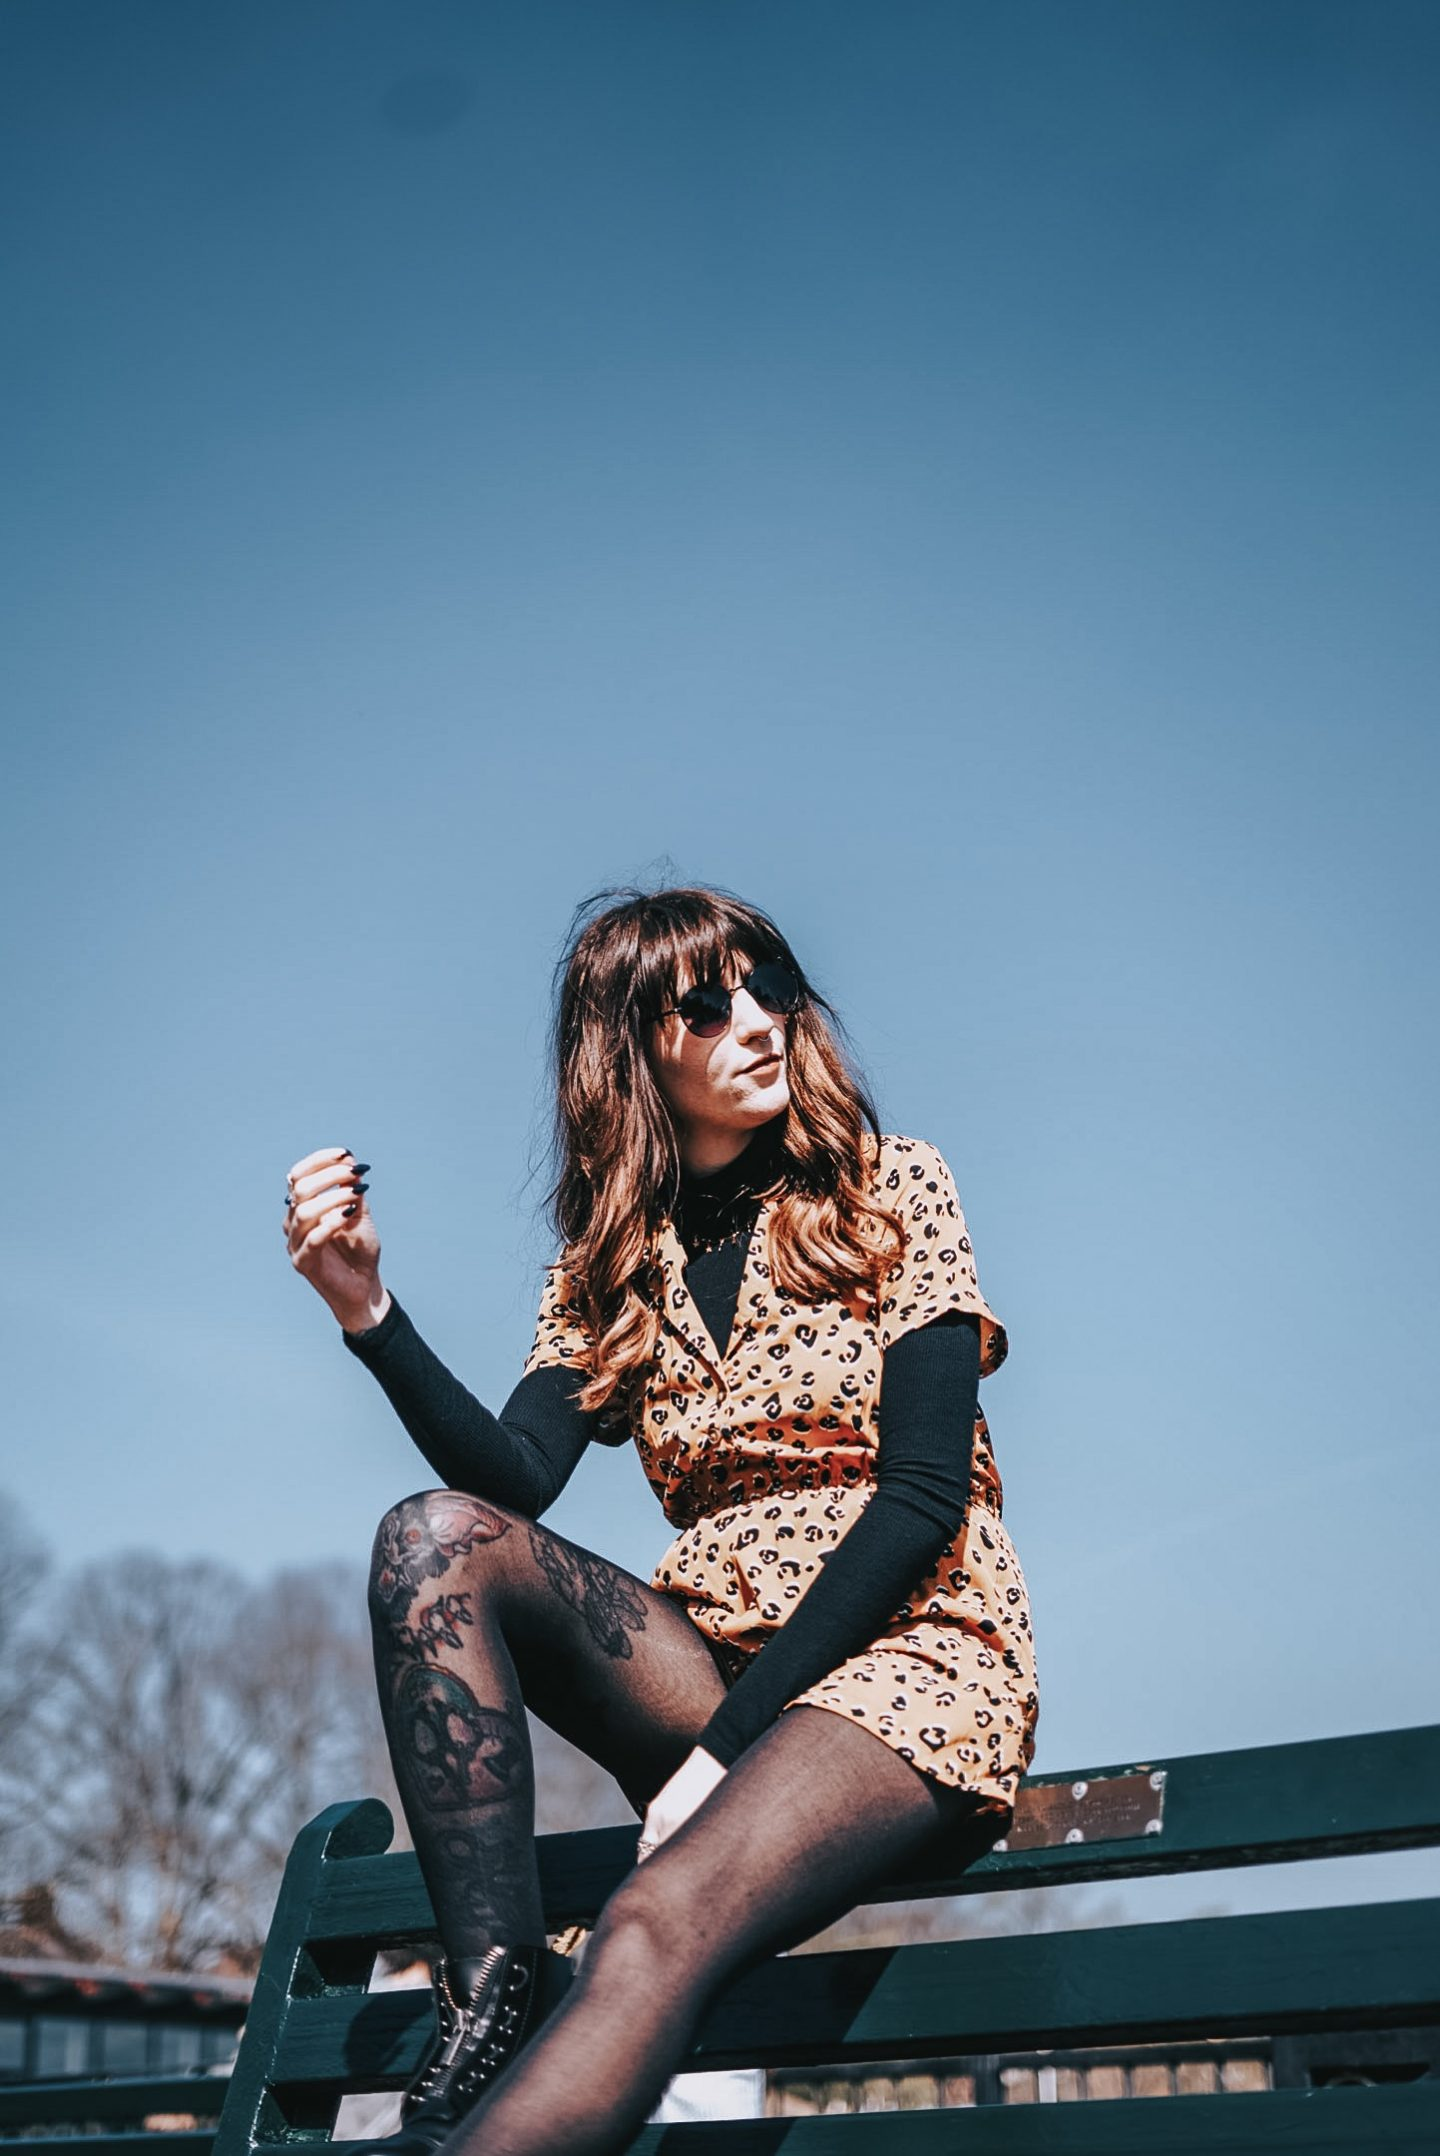 Refusing To Let Go Off My Identity - me on bench wearing leopard playsuit & black turtleneck